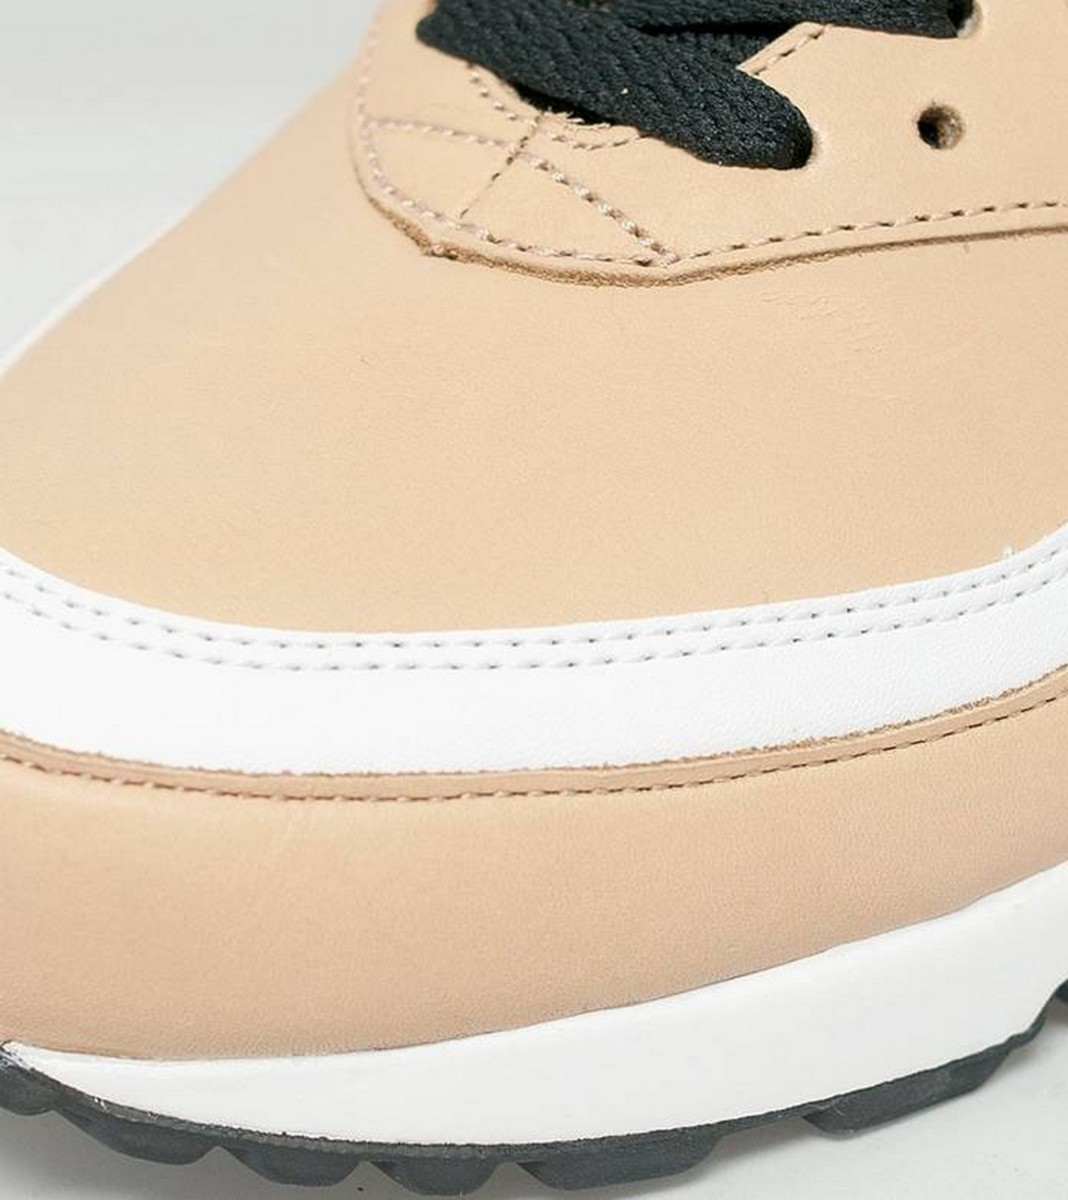 the-nike-air-max-bw-vachetta-delivers-buttery-tan-leather-3